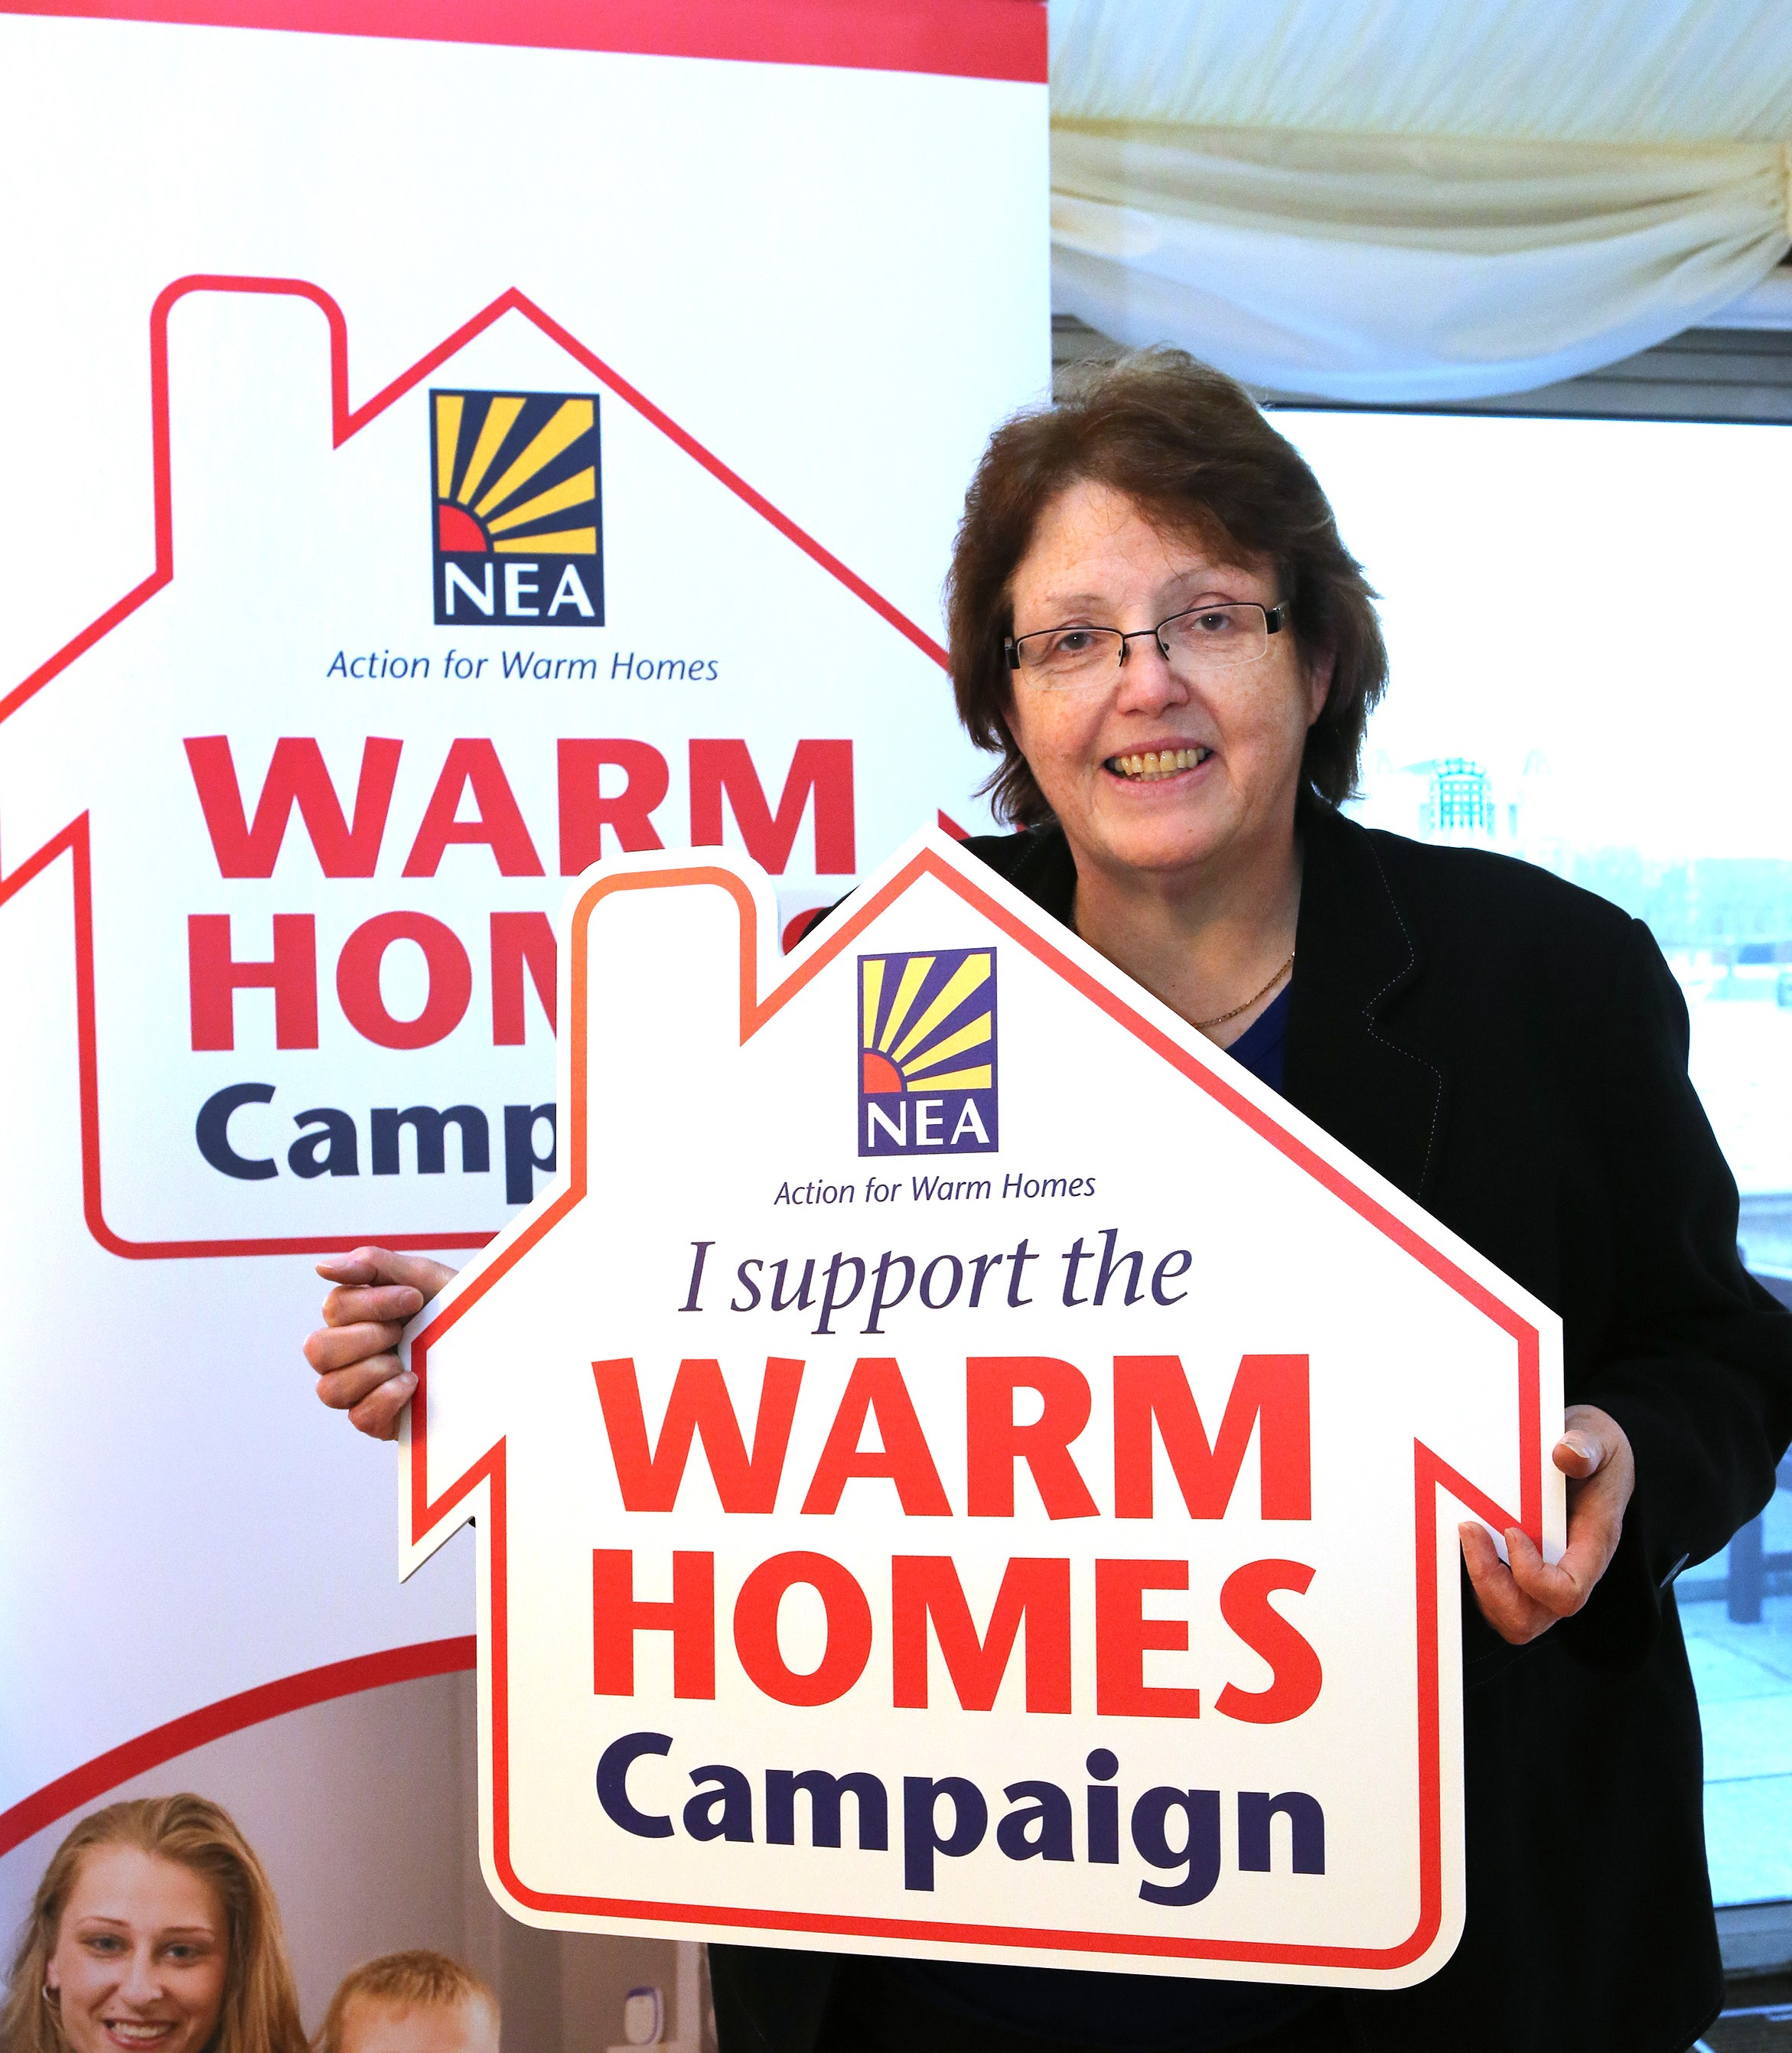 Rosie_Cooper_MP_supports_the_NEA's_Warm_Homes_Campaign.jpg